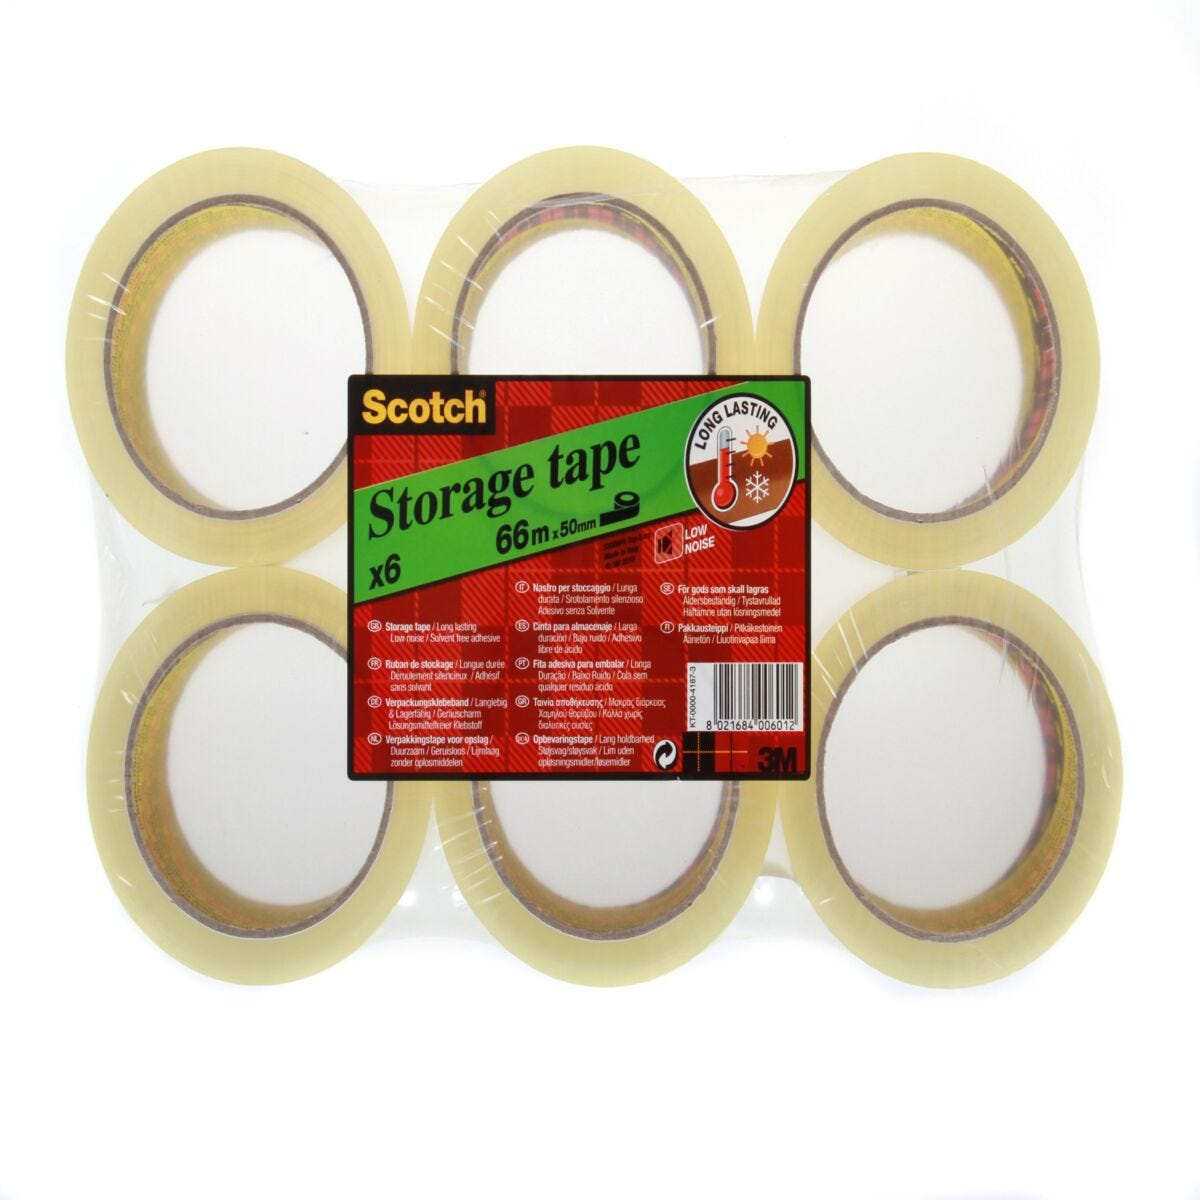 Scotch Low Noise Storage Tape 50mmx66m Pack of 6